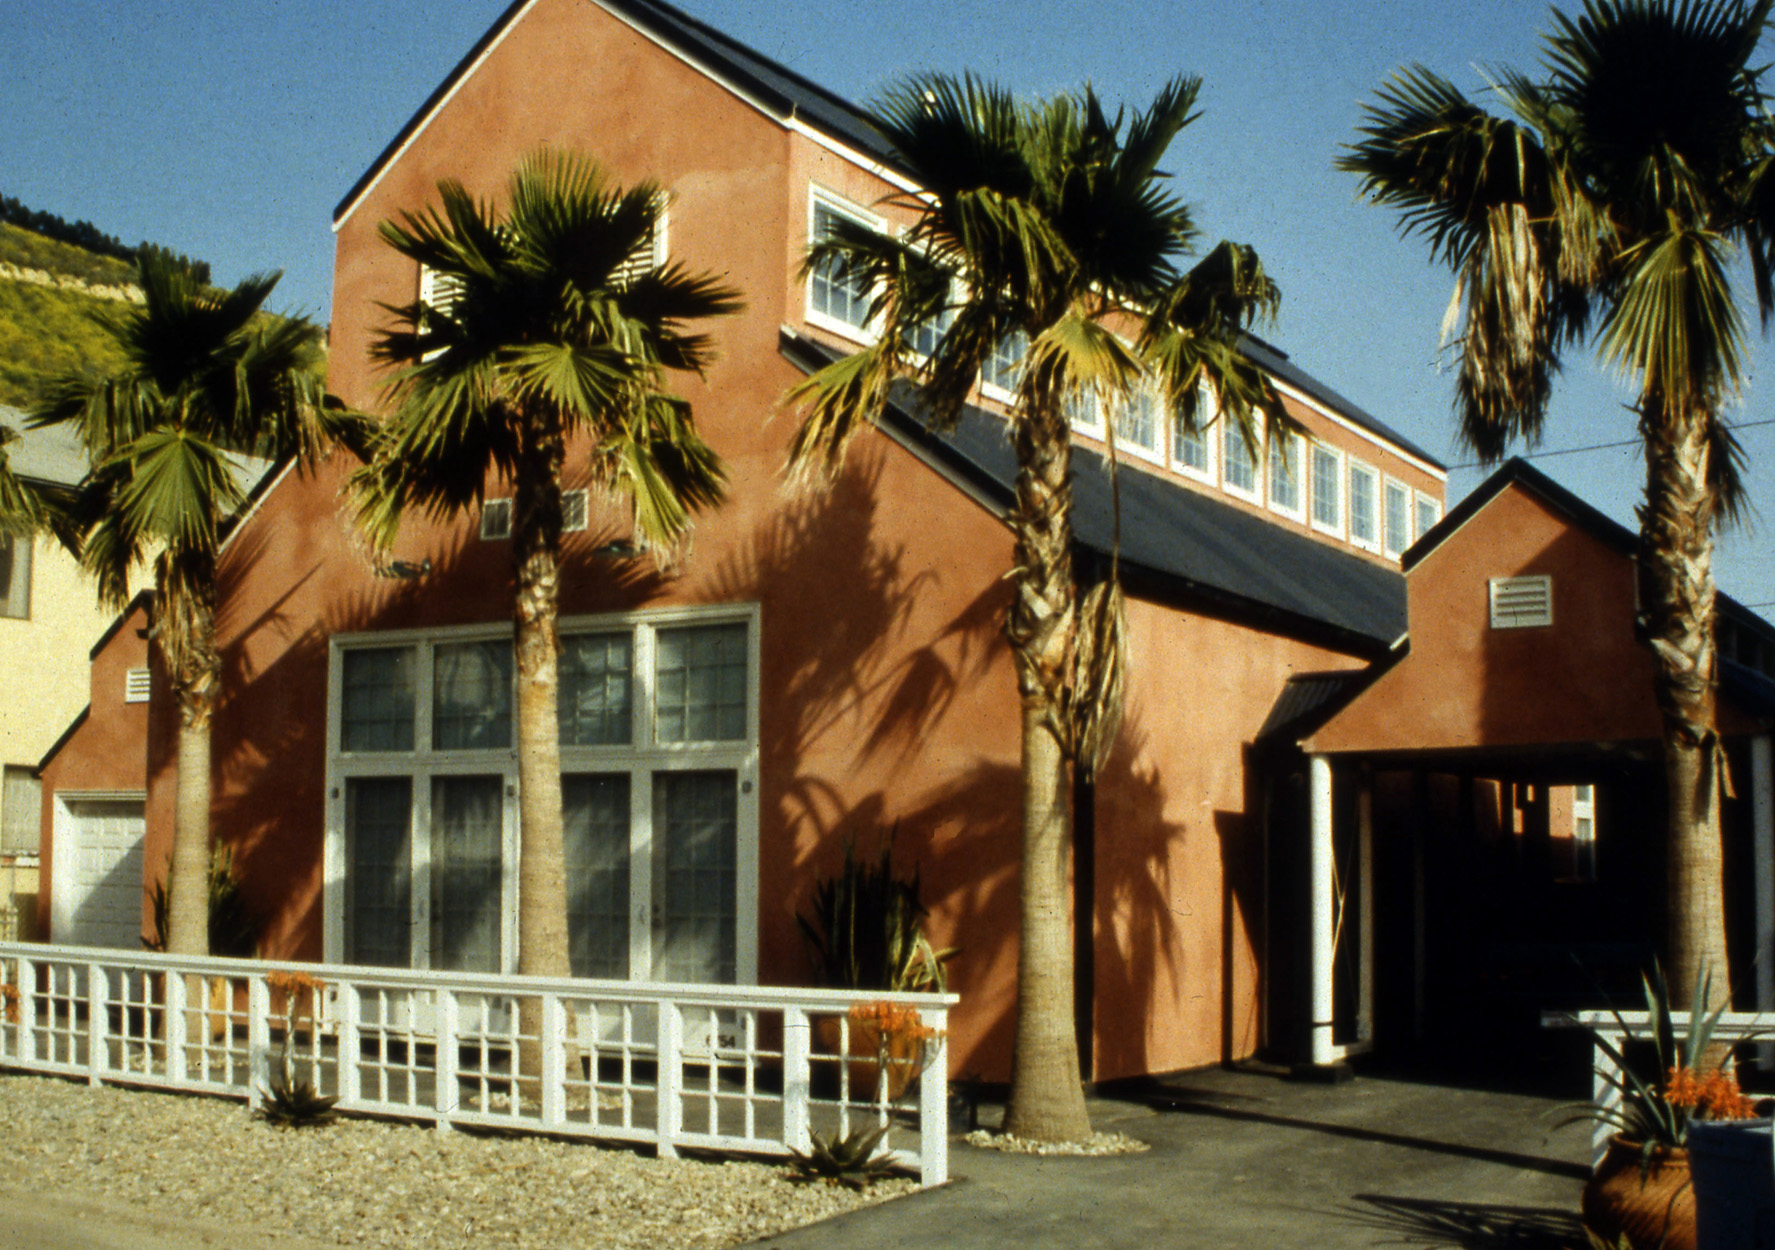 Roger Brown Residence, La Conchita, CA; architect Stanley Tigerman, 1988.